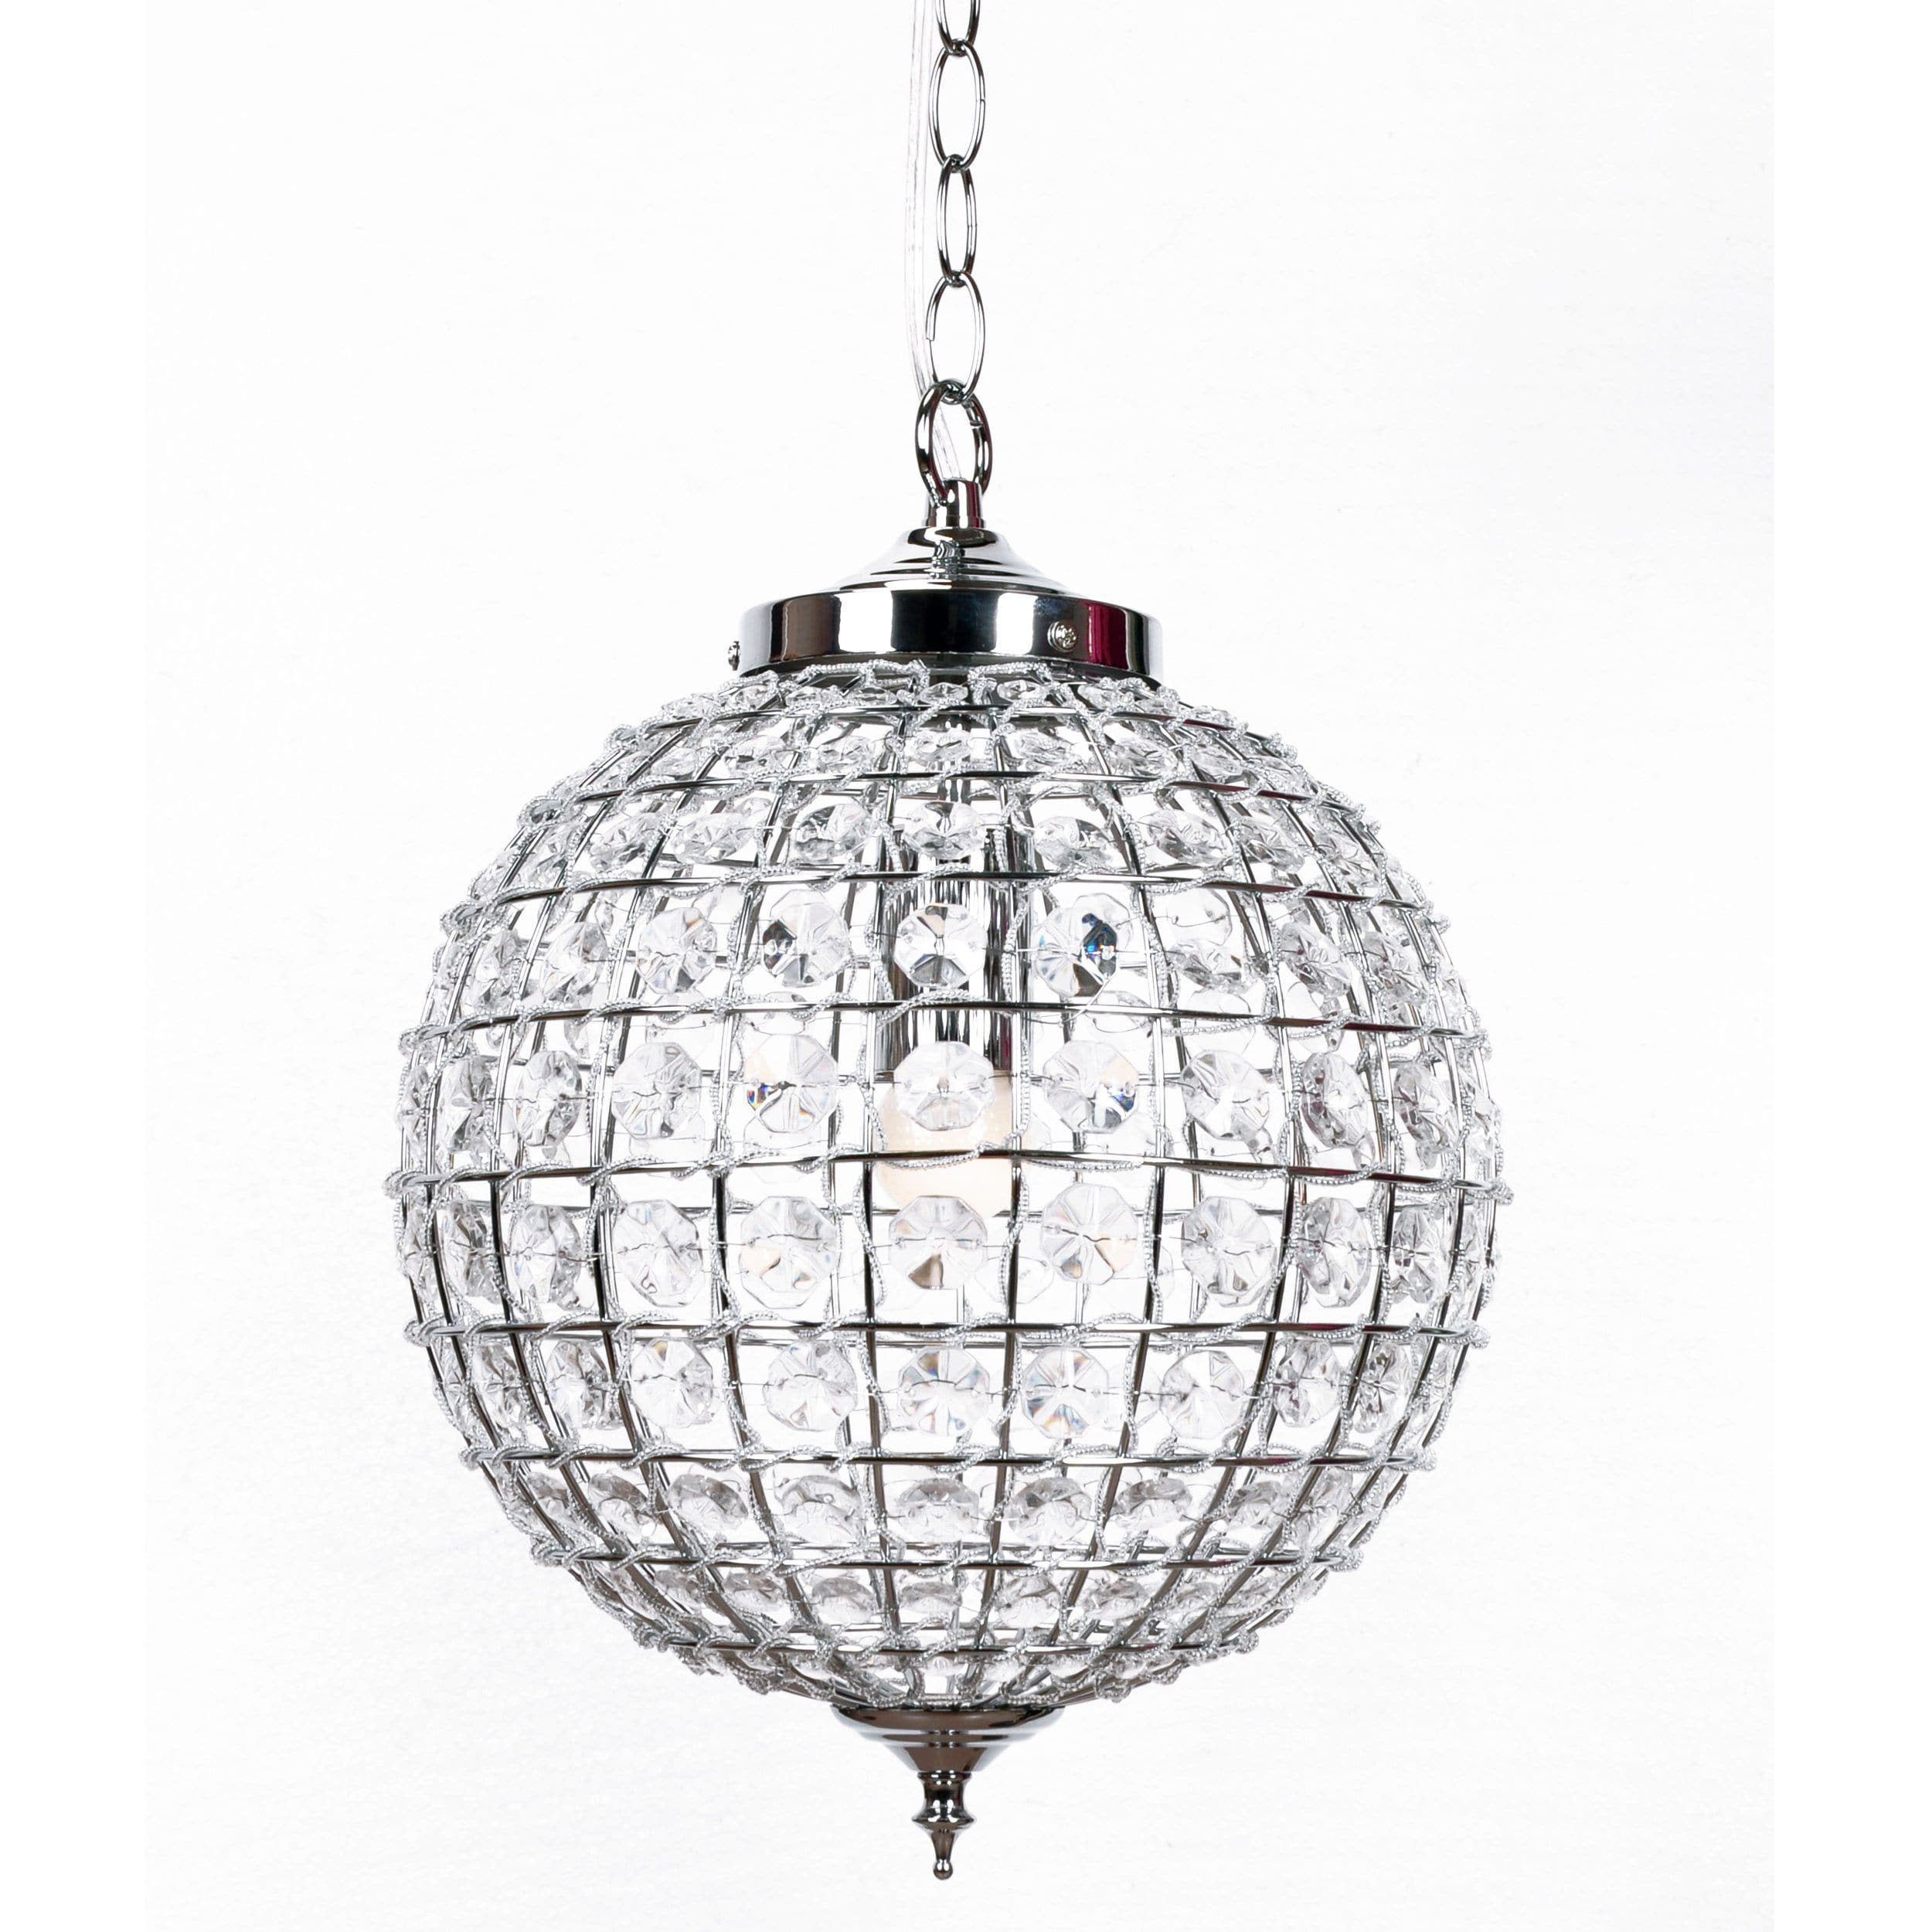 Casablanca pendant chandelier brass 2 sizes available ivory large casablanca crystal ball chandelier with polished chrome fittings on a white background arubaitofo Images